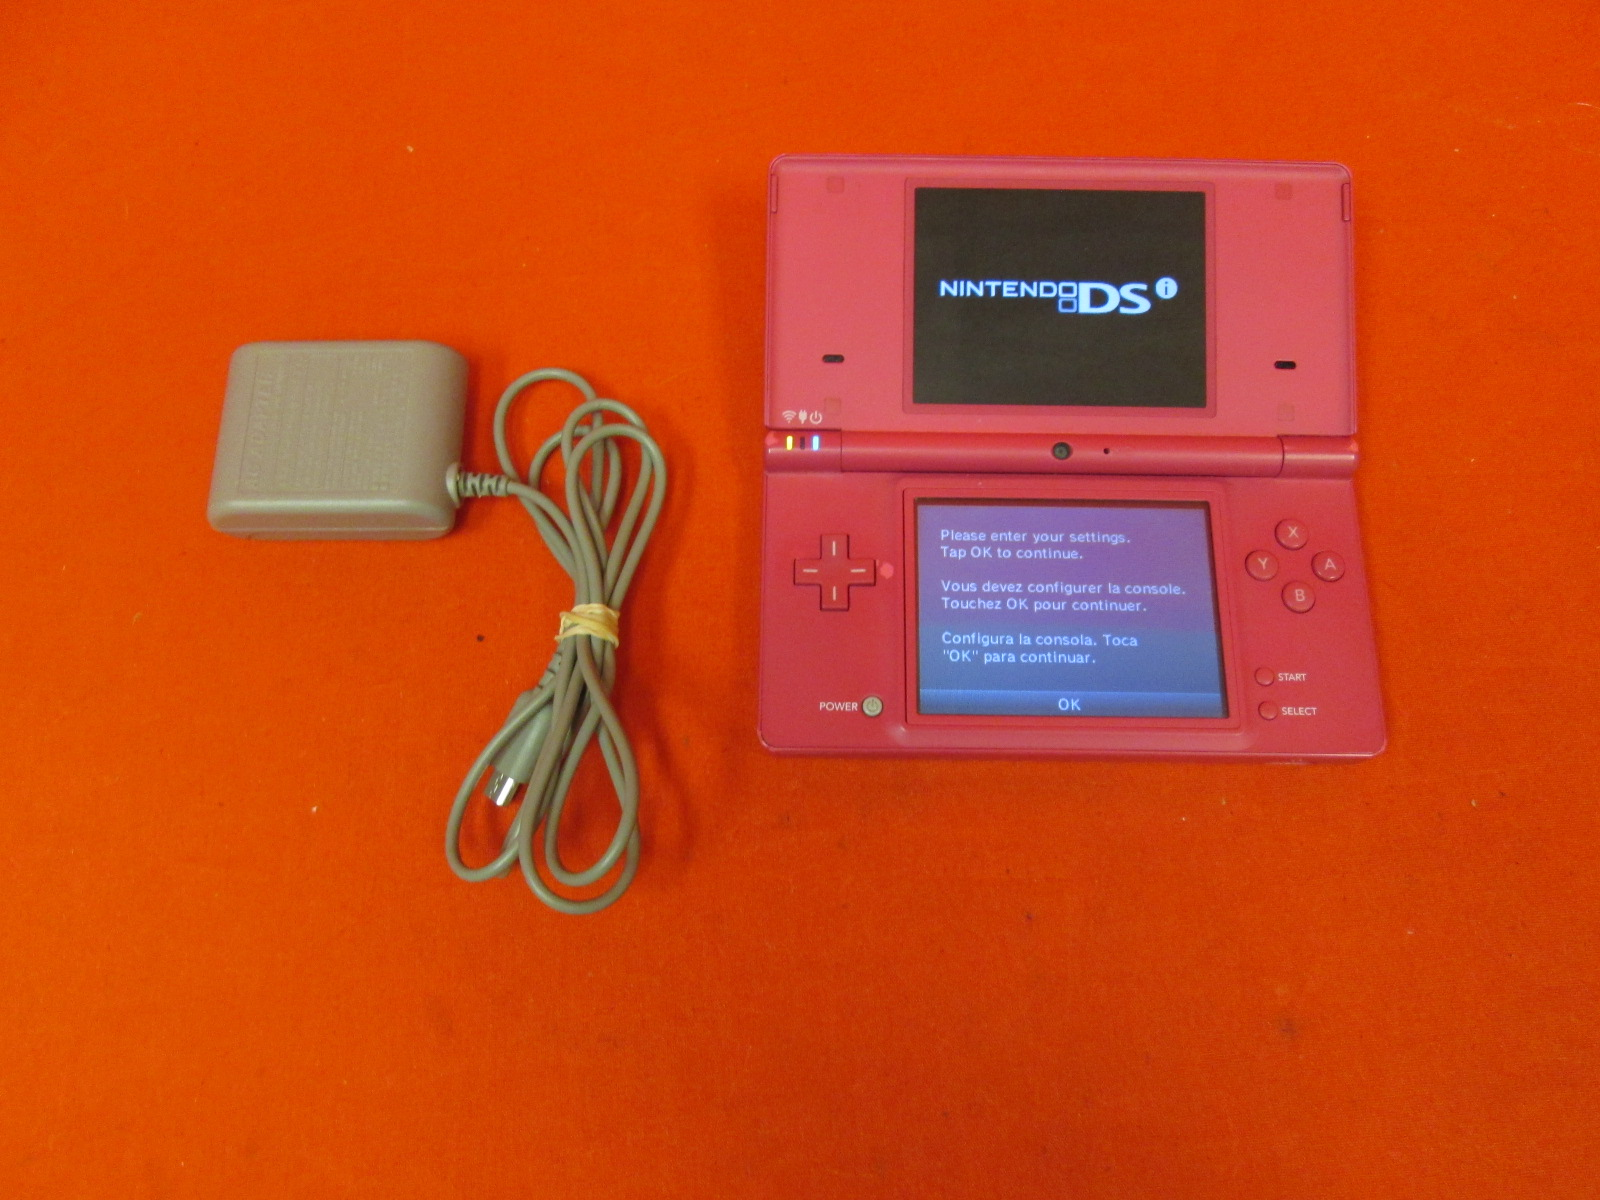 Image 0 of Nintendo DSi Handheld Portable Video Game Console Pink